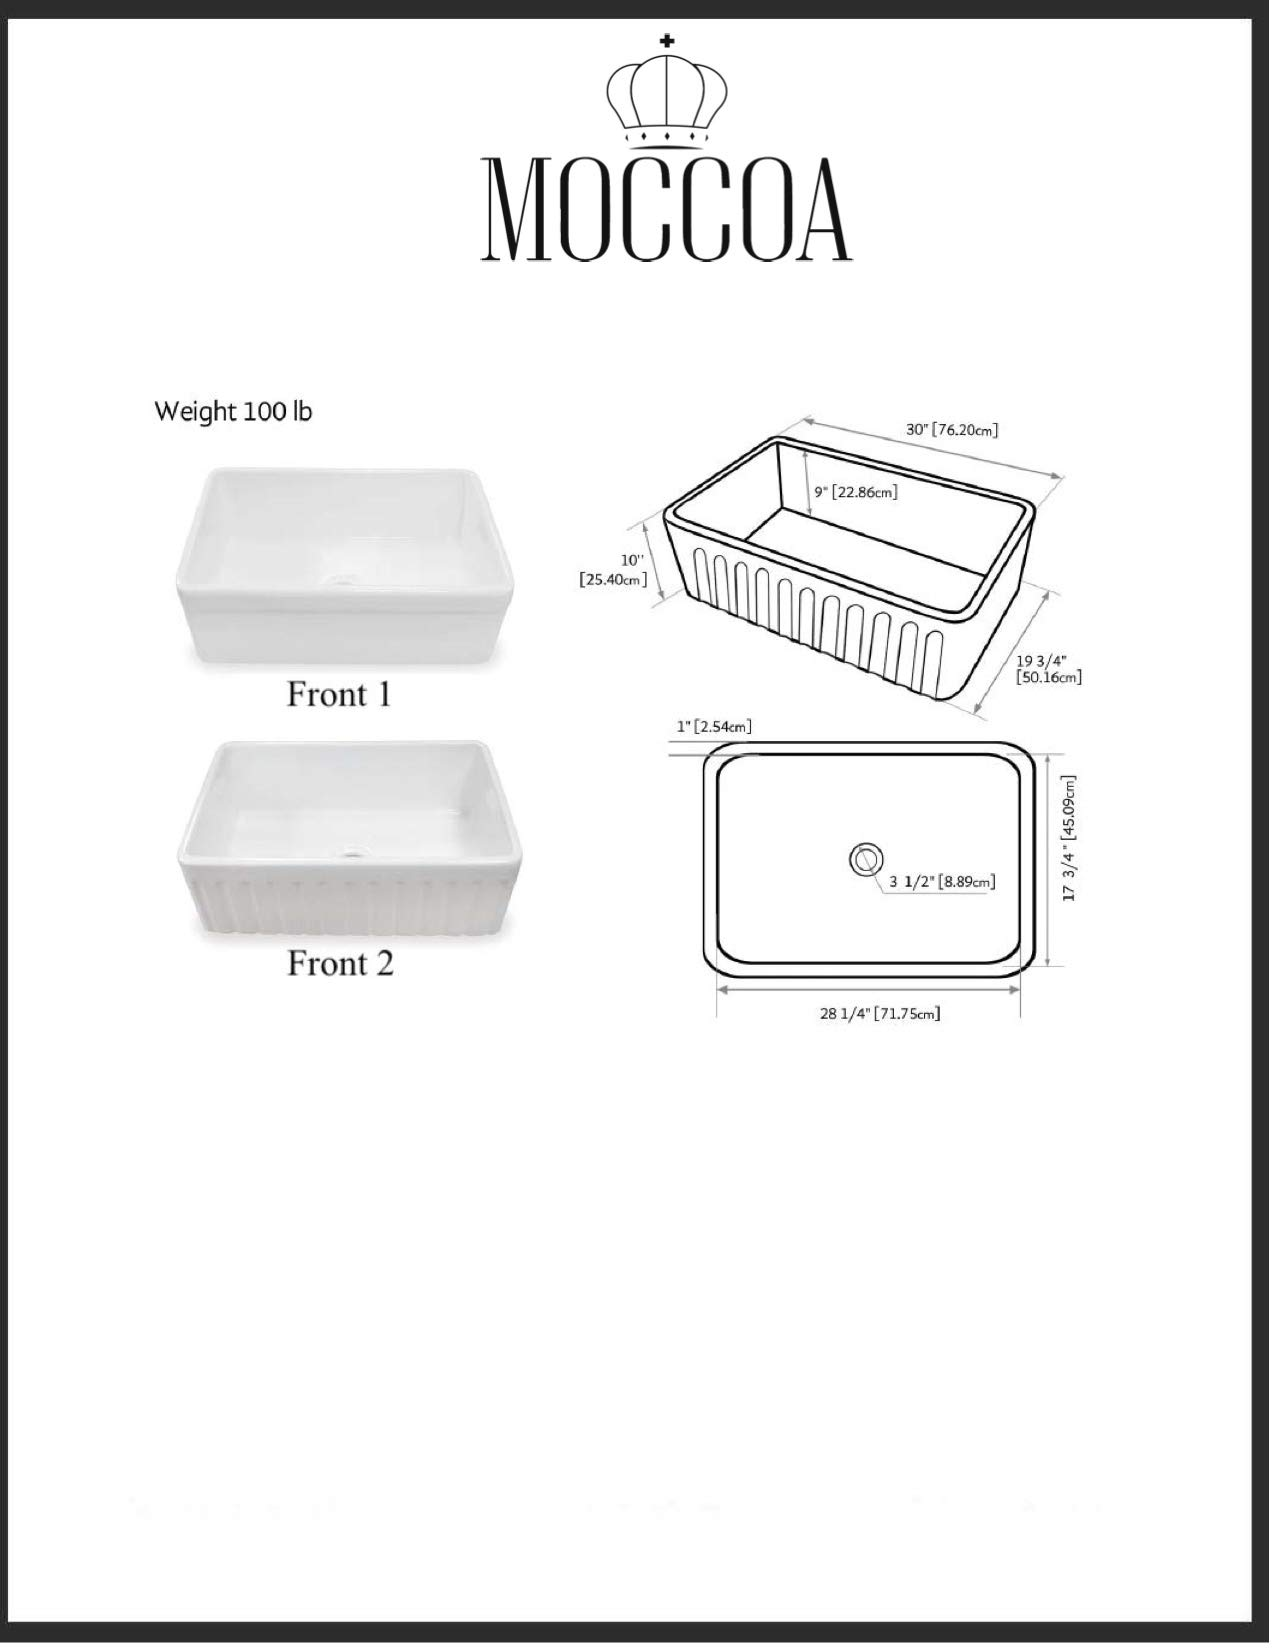 TRUE FIRECLAY Stria Reversible 30'' Apron Front Sink by MOCCOA, Farmhouse Kitchen Sink White … by MOCCOA (Image #8)